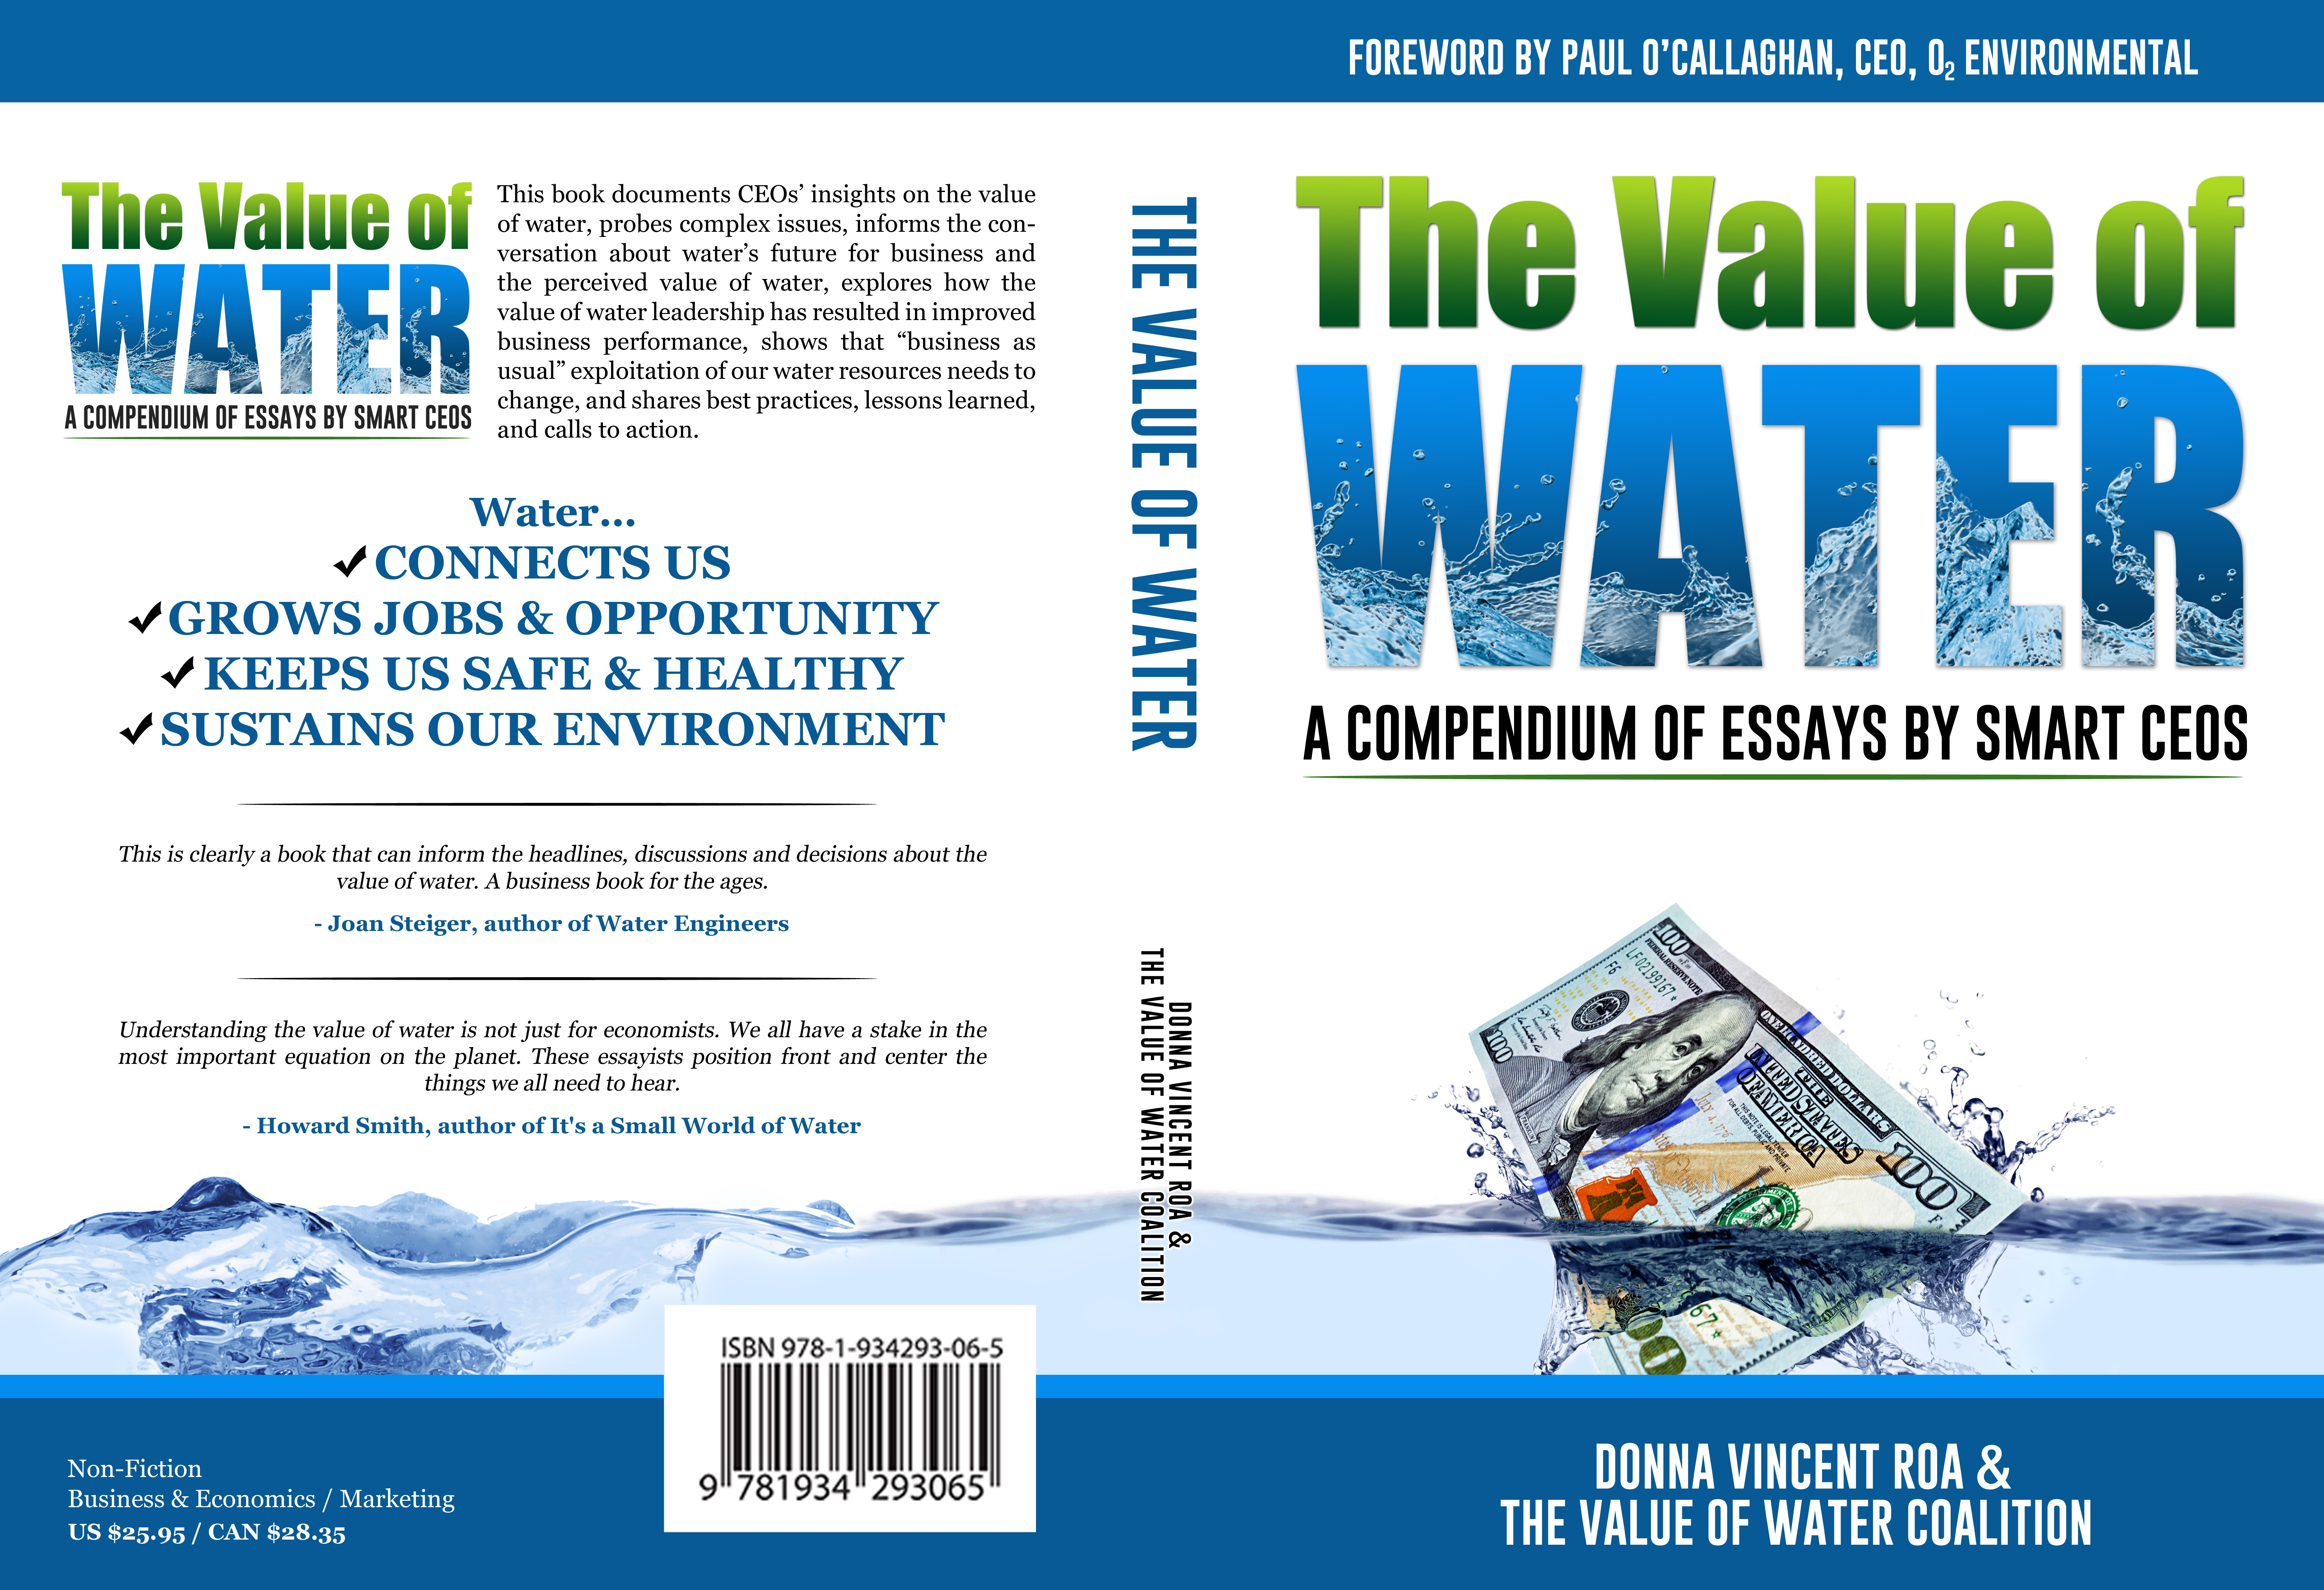 [Book Cover] The Value of Water: A Compendium of Essays by Smart CEOs